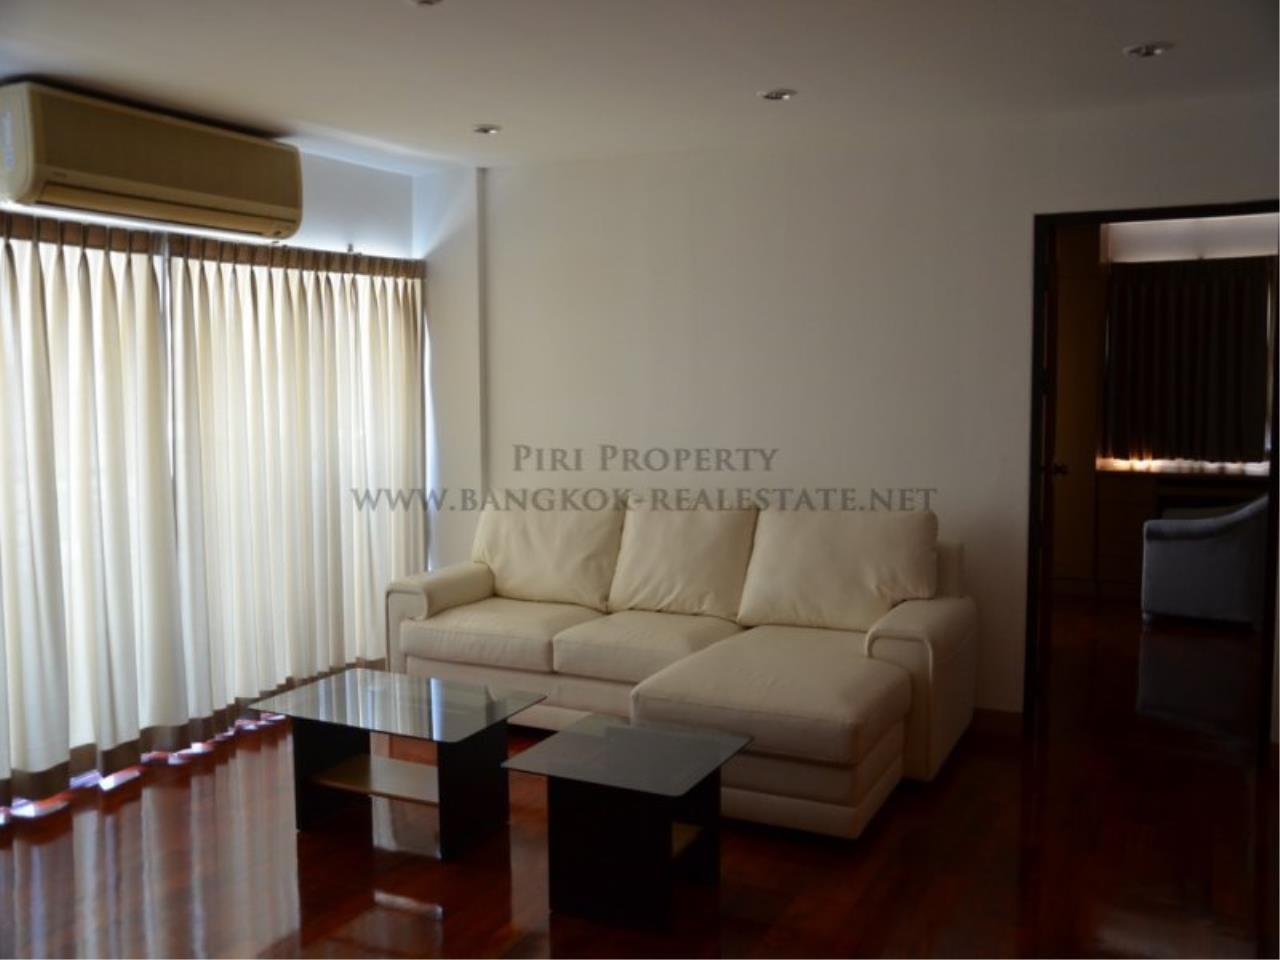 Piri Property Agency's Spacious 3 Bedroom Condo in Ekkamai - 128 SQM for 50K - Top View Tower - 30th Floor 2